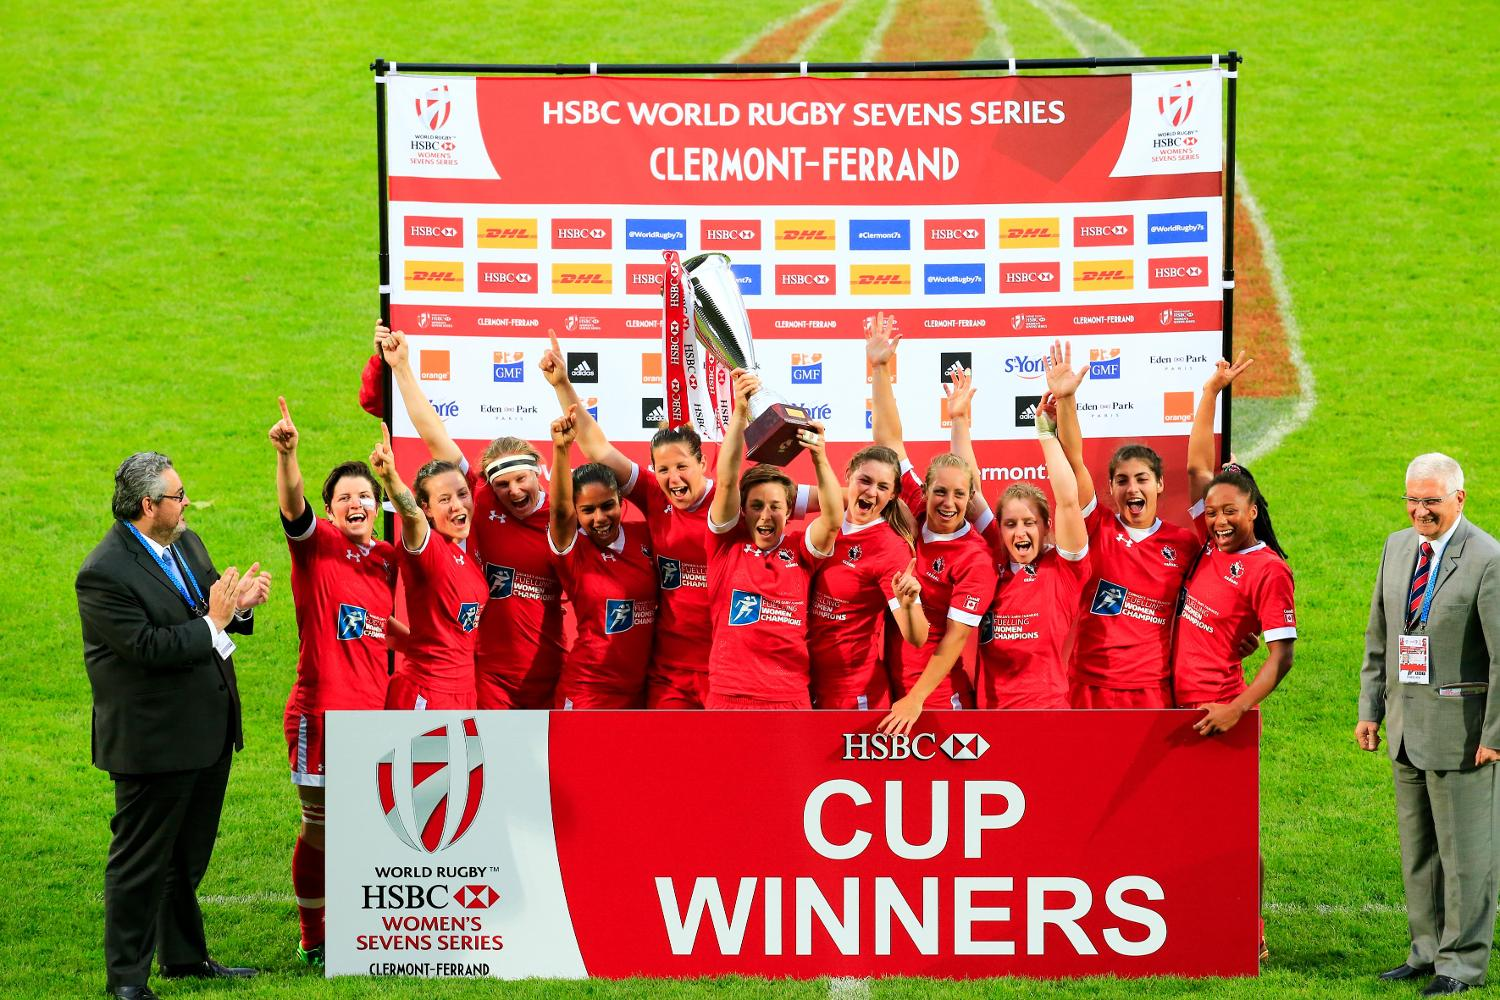 Canada - Clermont-Ferrand 2016 champions